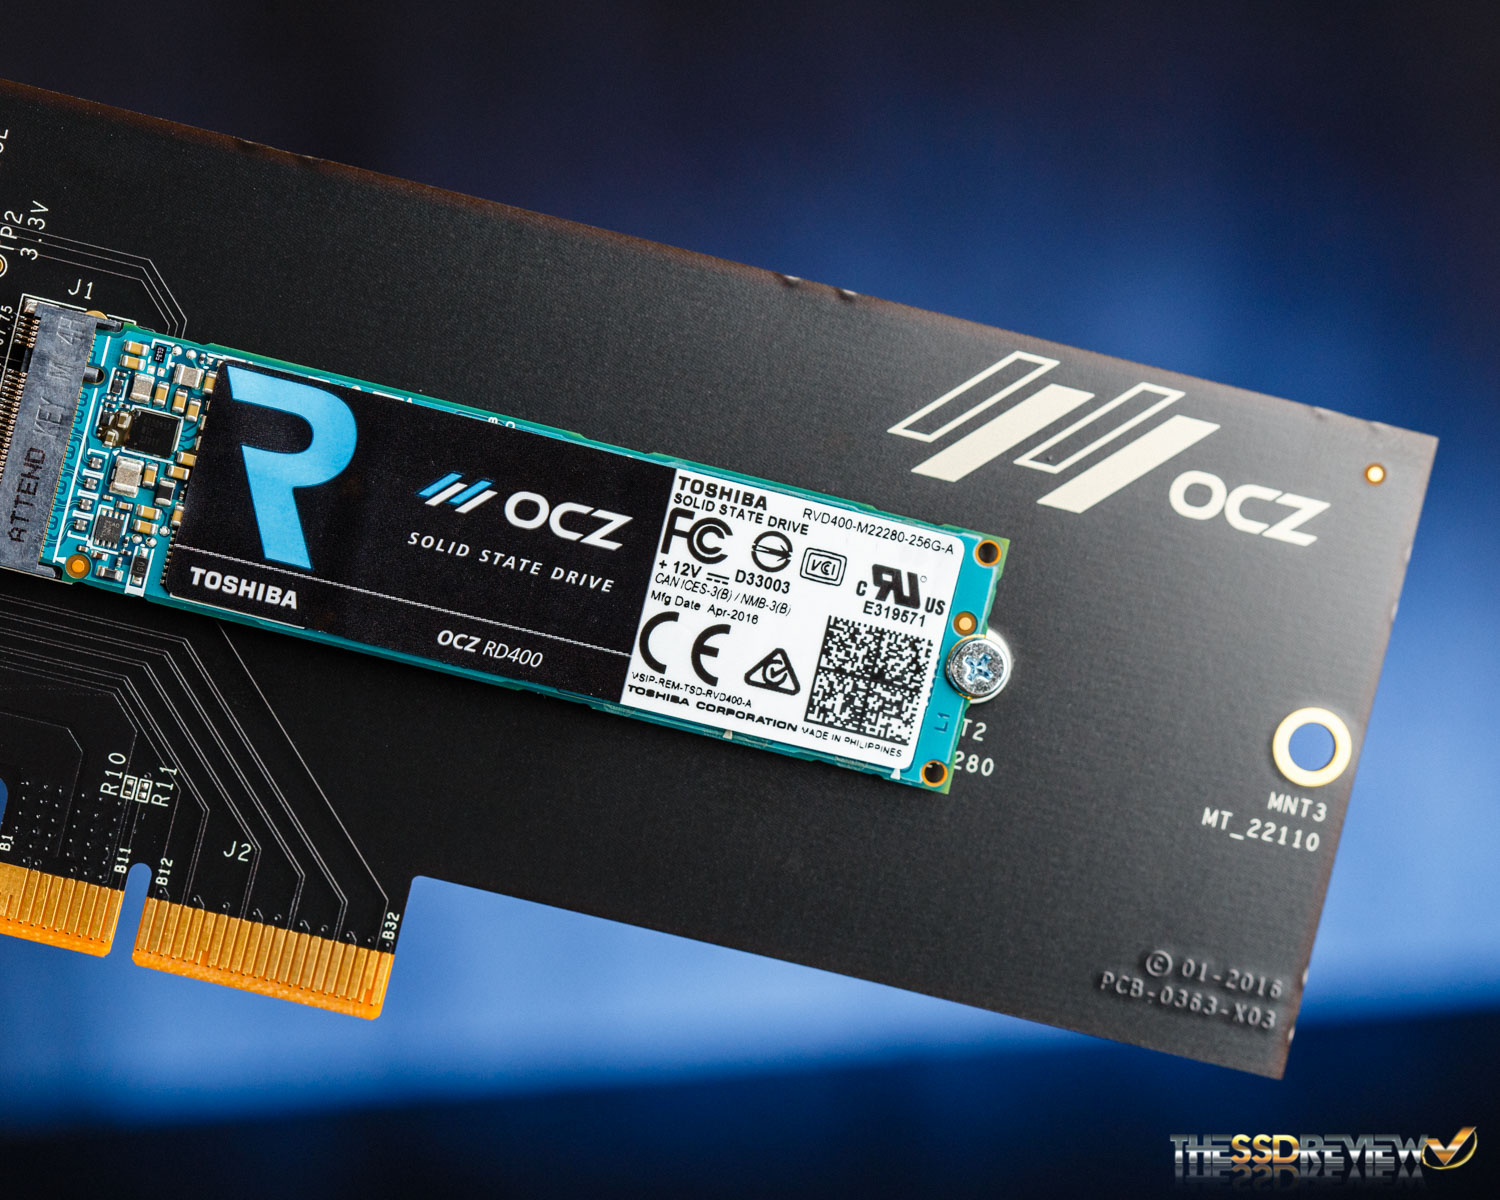 Ocz rd400 nvme ssd review 256gb512gb1tb the ssd review falaconquin